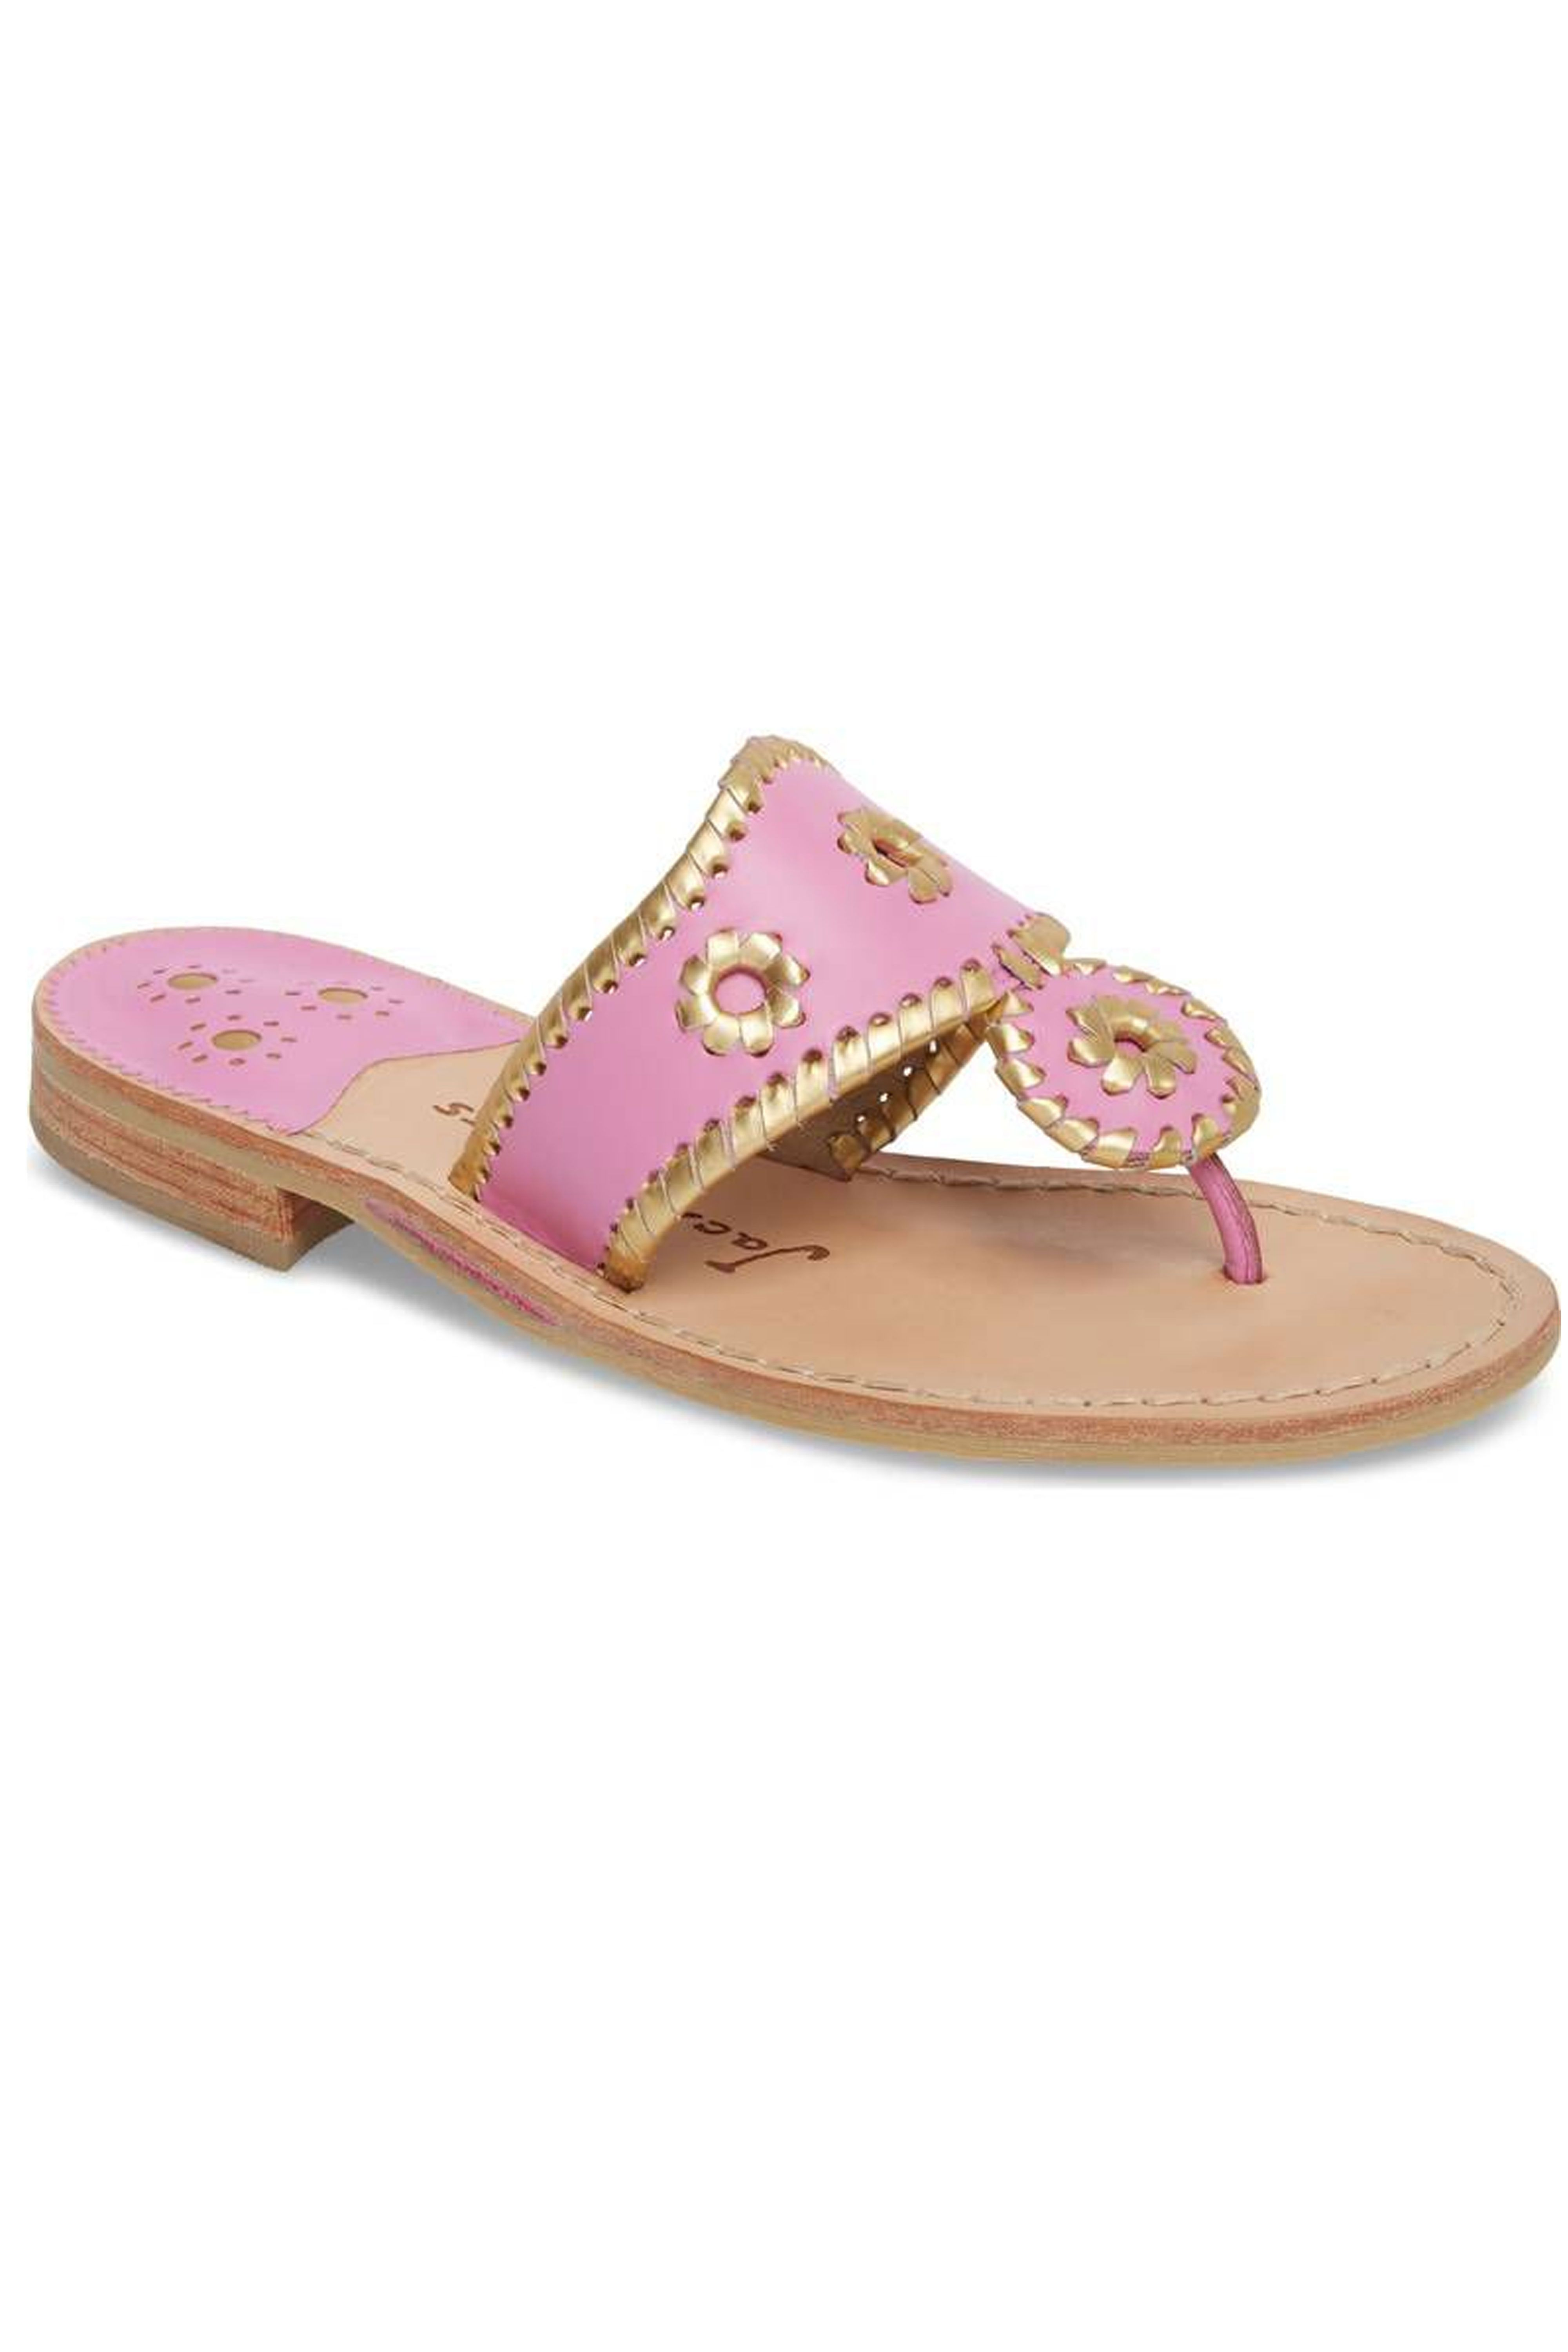 e9a08e84 29 Preppy Shoes for Women - Preppy Style Sandals, Heels & Flats